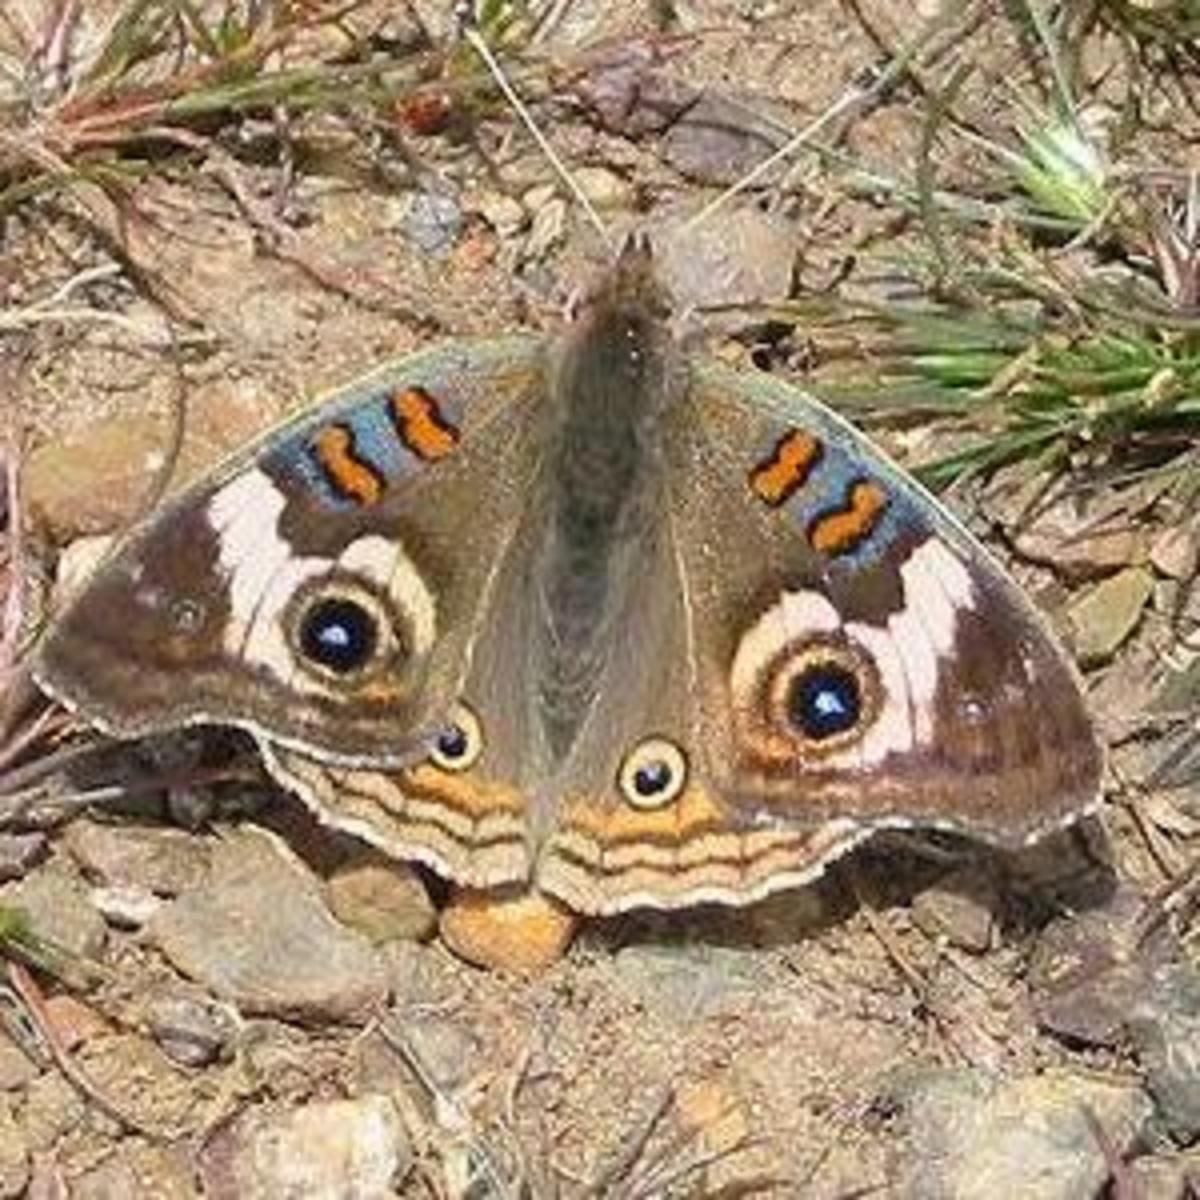 The common buckeye is a beautiful butterfly with interesting markings as seen in this picture.